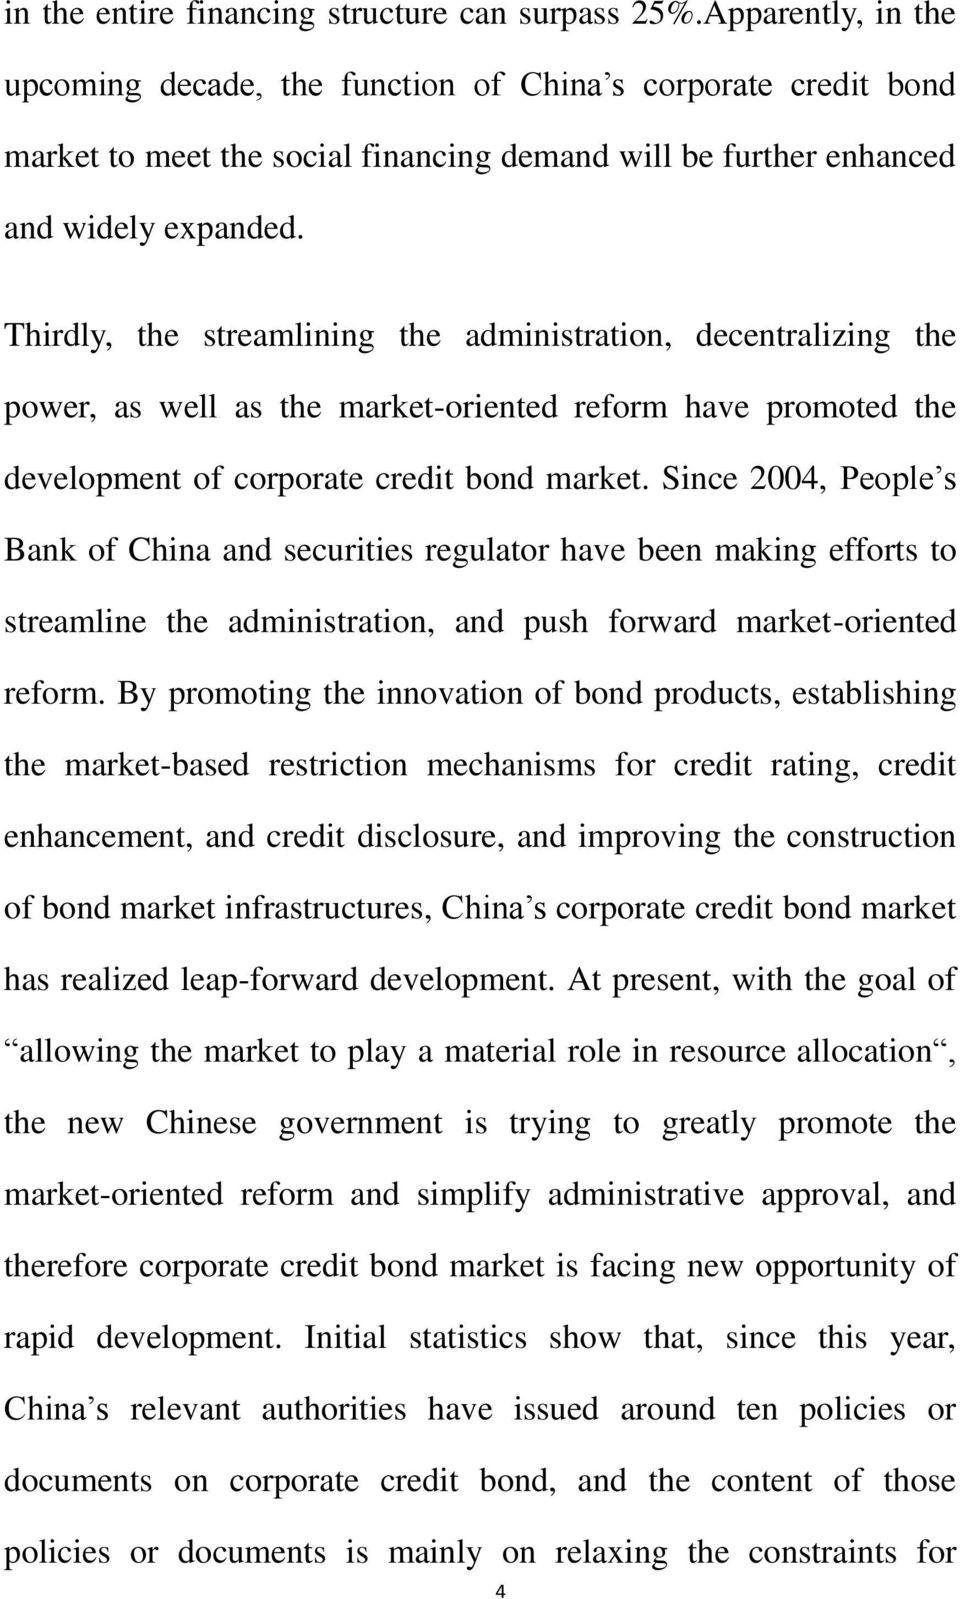 Thirdly, the streamlining the administration, decentralizing the power, as well as the market-oriented reform have promoted the development of corporate credit bond market.